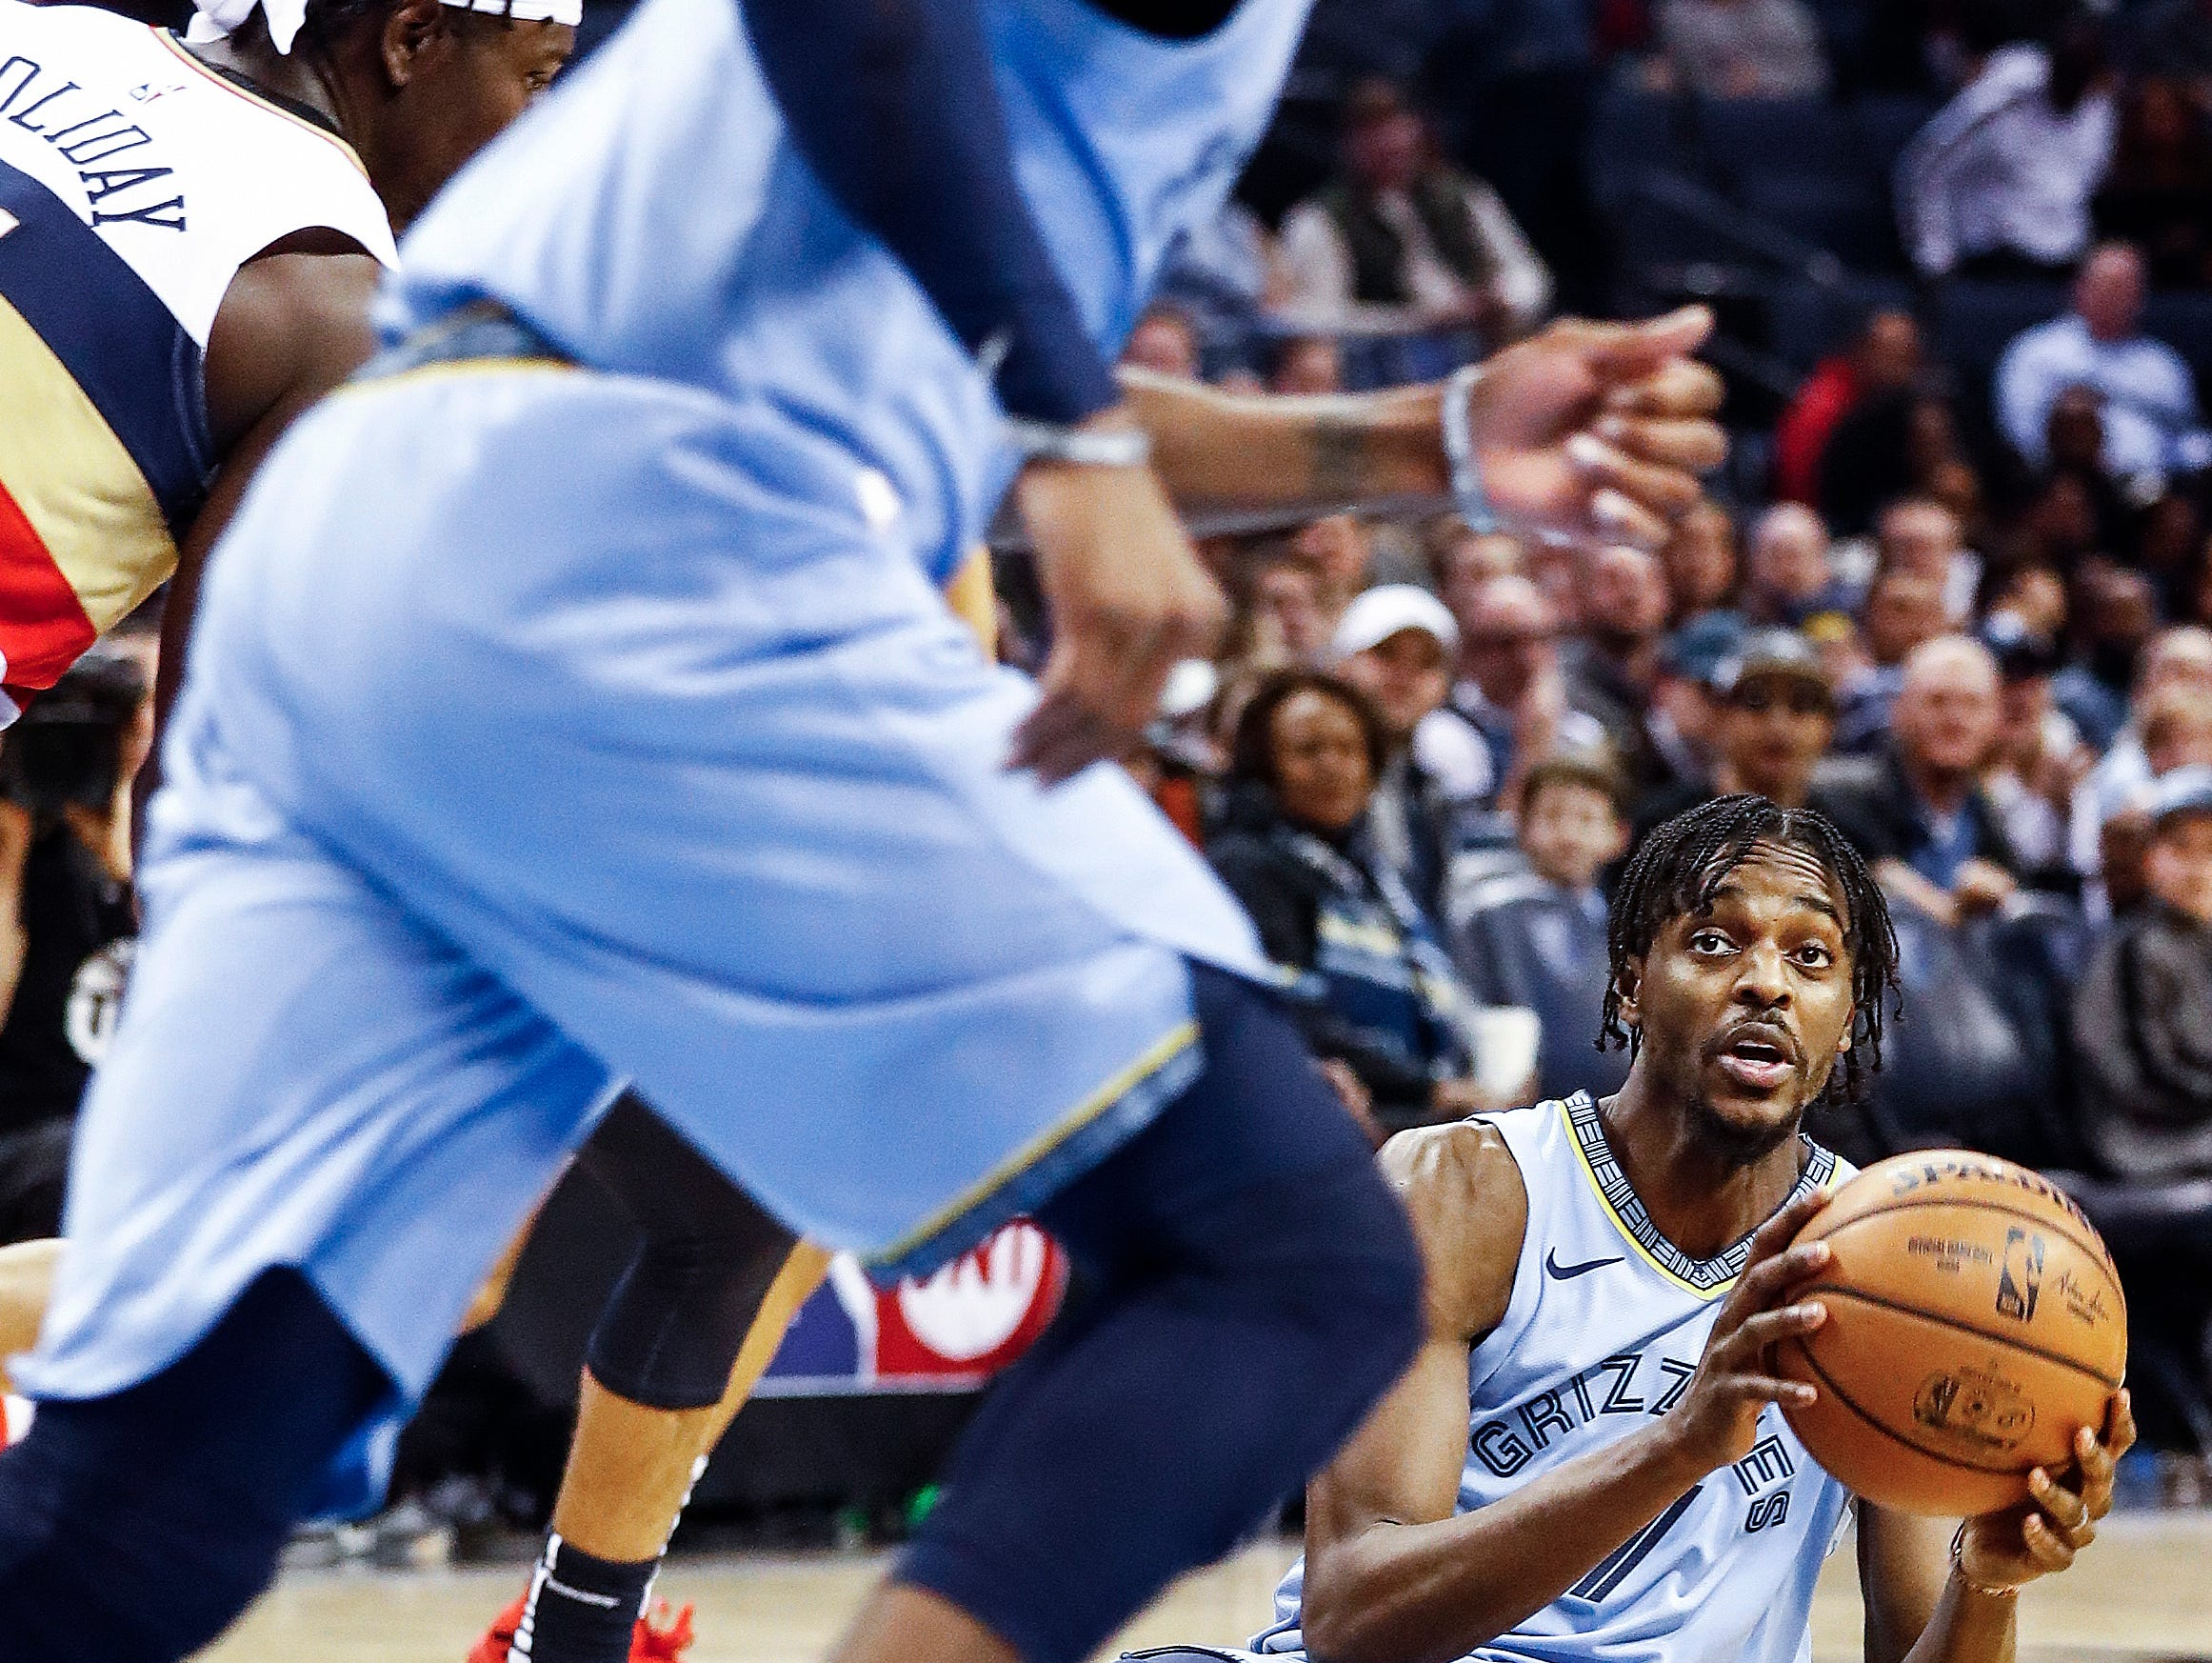 Memphis Grizzlies guard Justin Holiday (right) looks to make a pass after grabbing a loose ball during action against New Orleans Pelicans at the FedExForum in Memphis, Tenn., Monday, January 21, 2019.